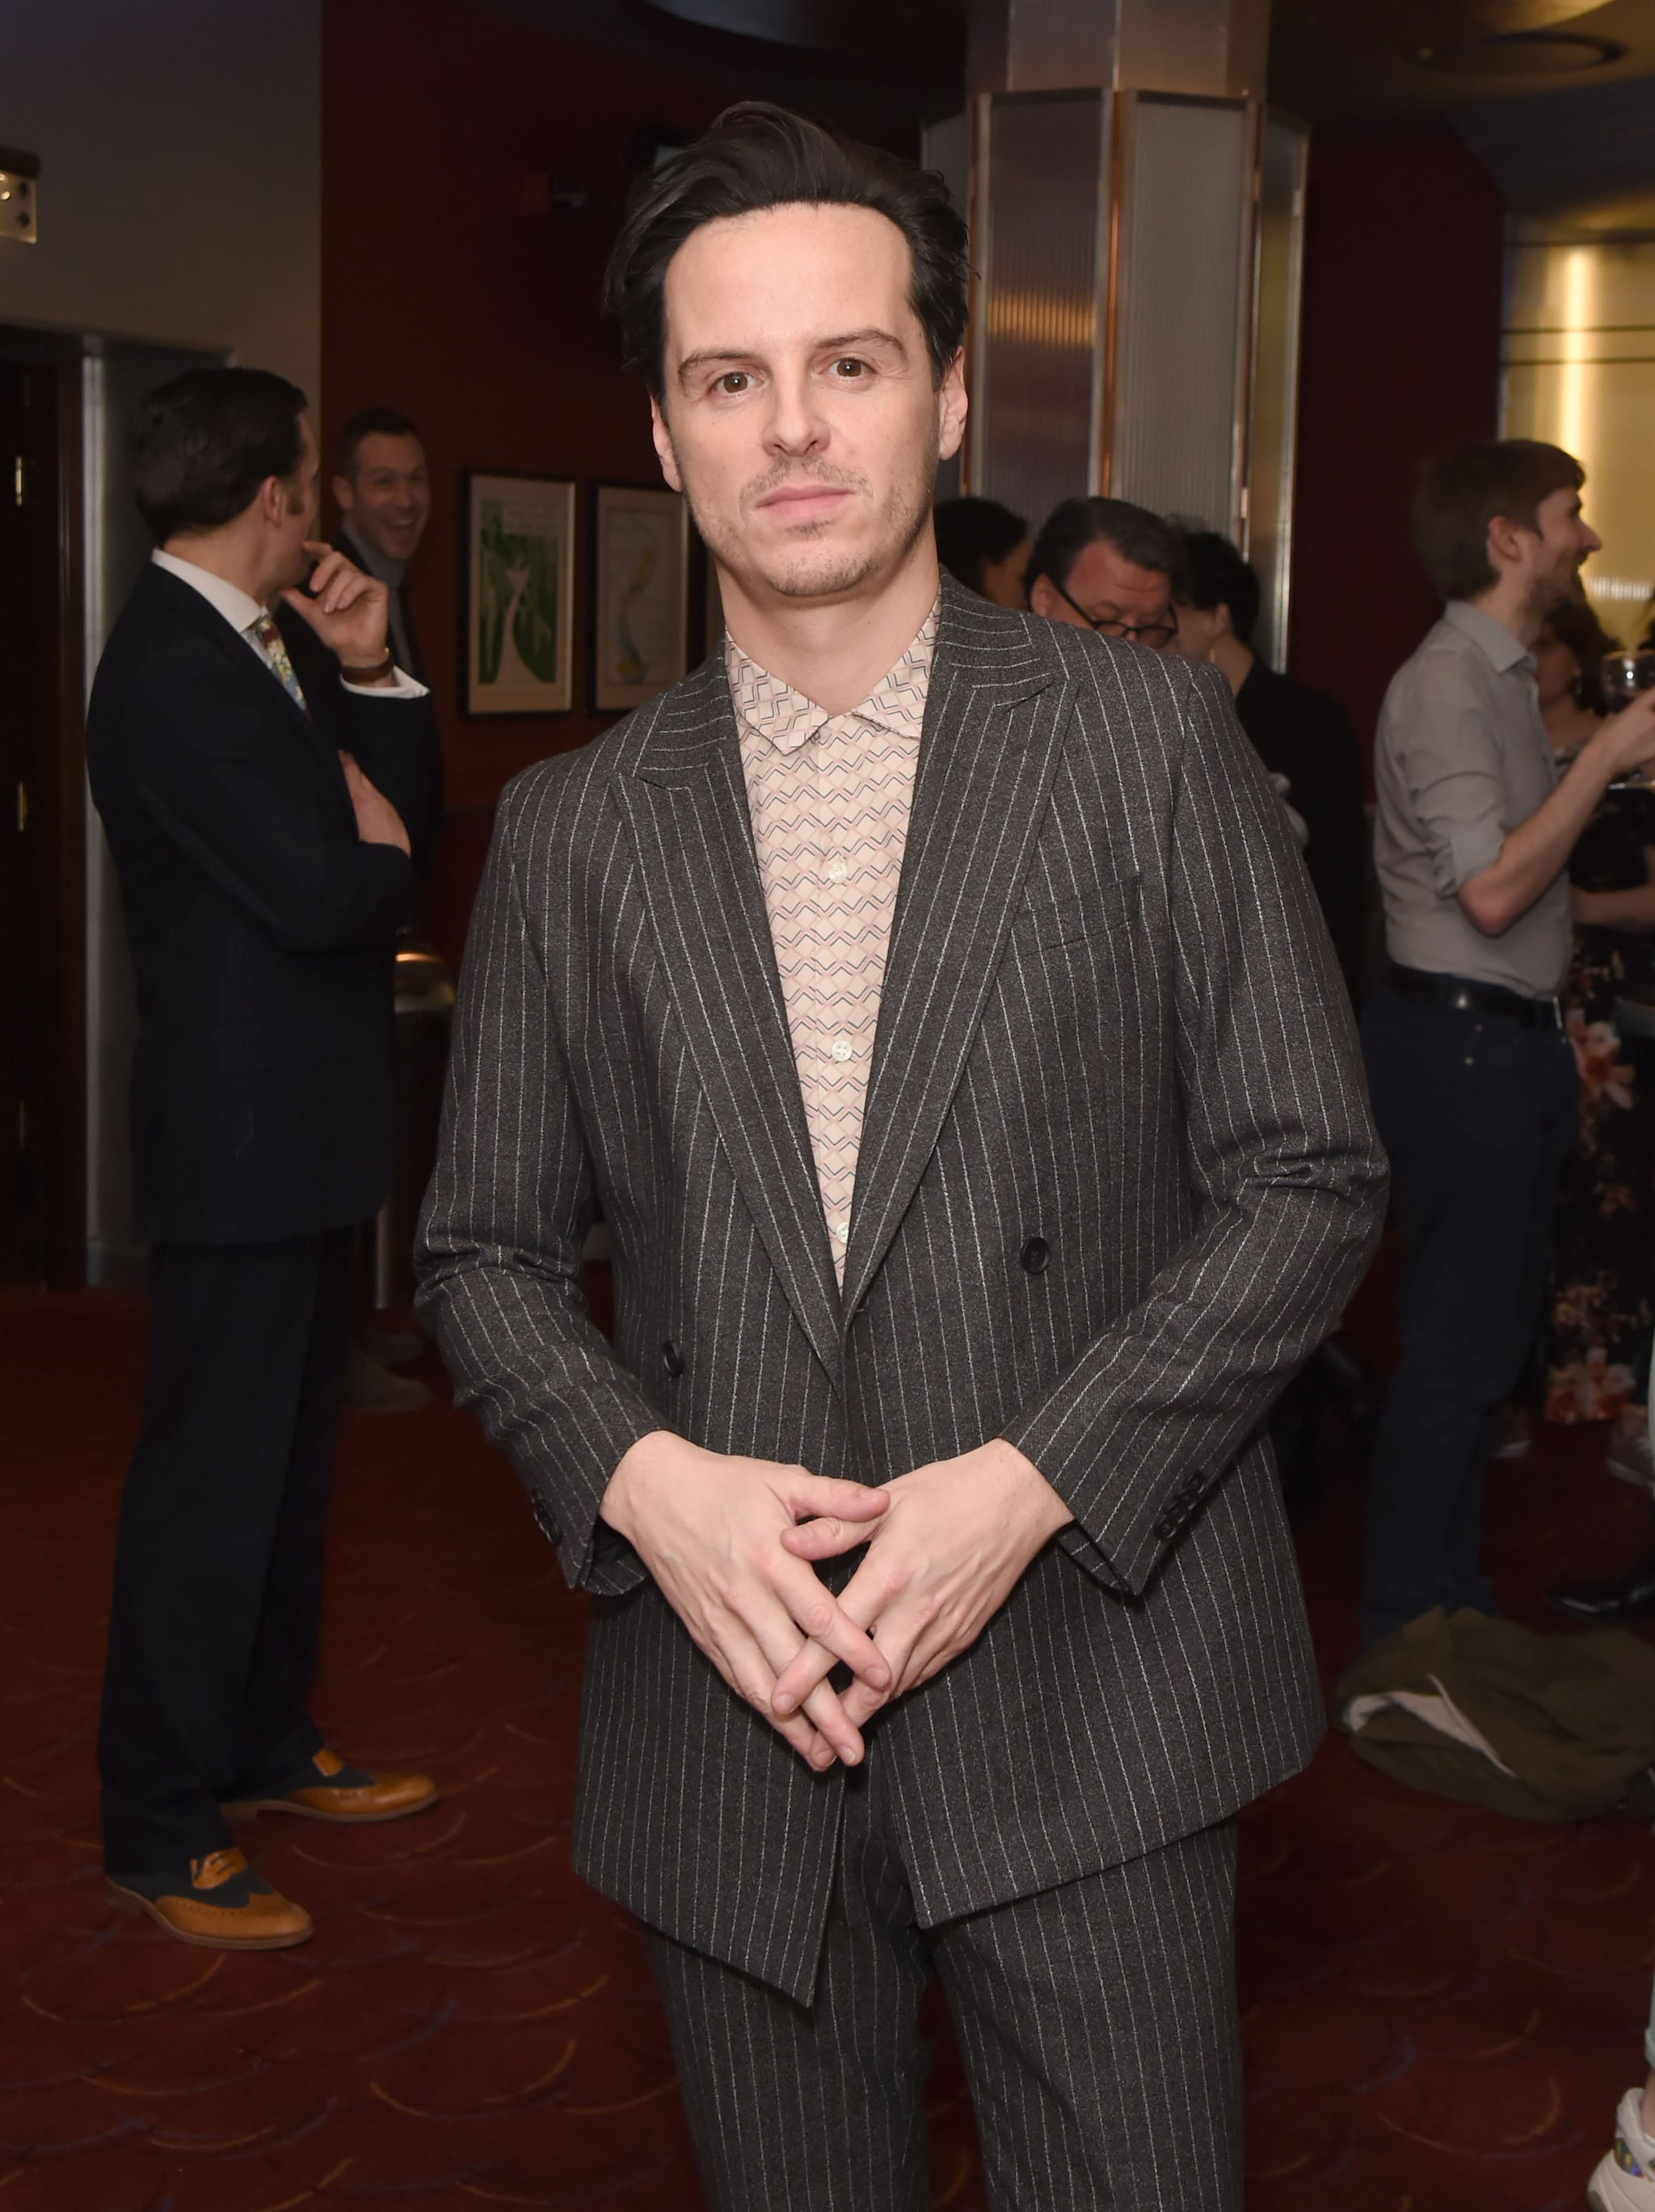 LONDON, ENGLAND - MARCH 01:  Andrew Scott attends The WhatsOnStage Awards 2020 at The Prince of Wales Theatre on March 1, 2020 in London, England.  (Photo by David M. Benett/Dave Benett/Getty Images)